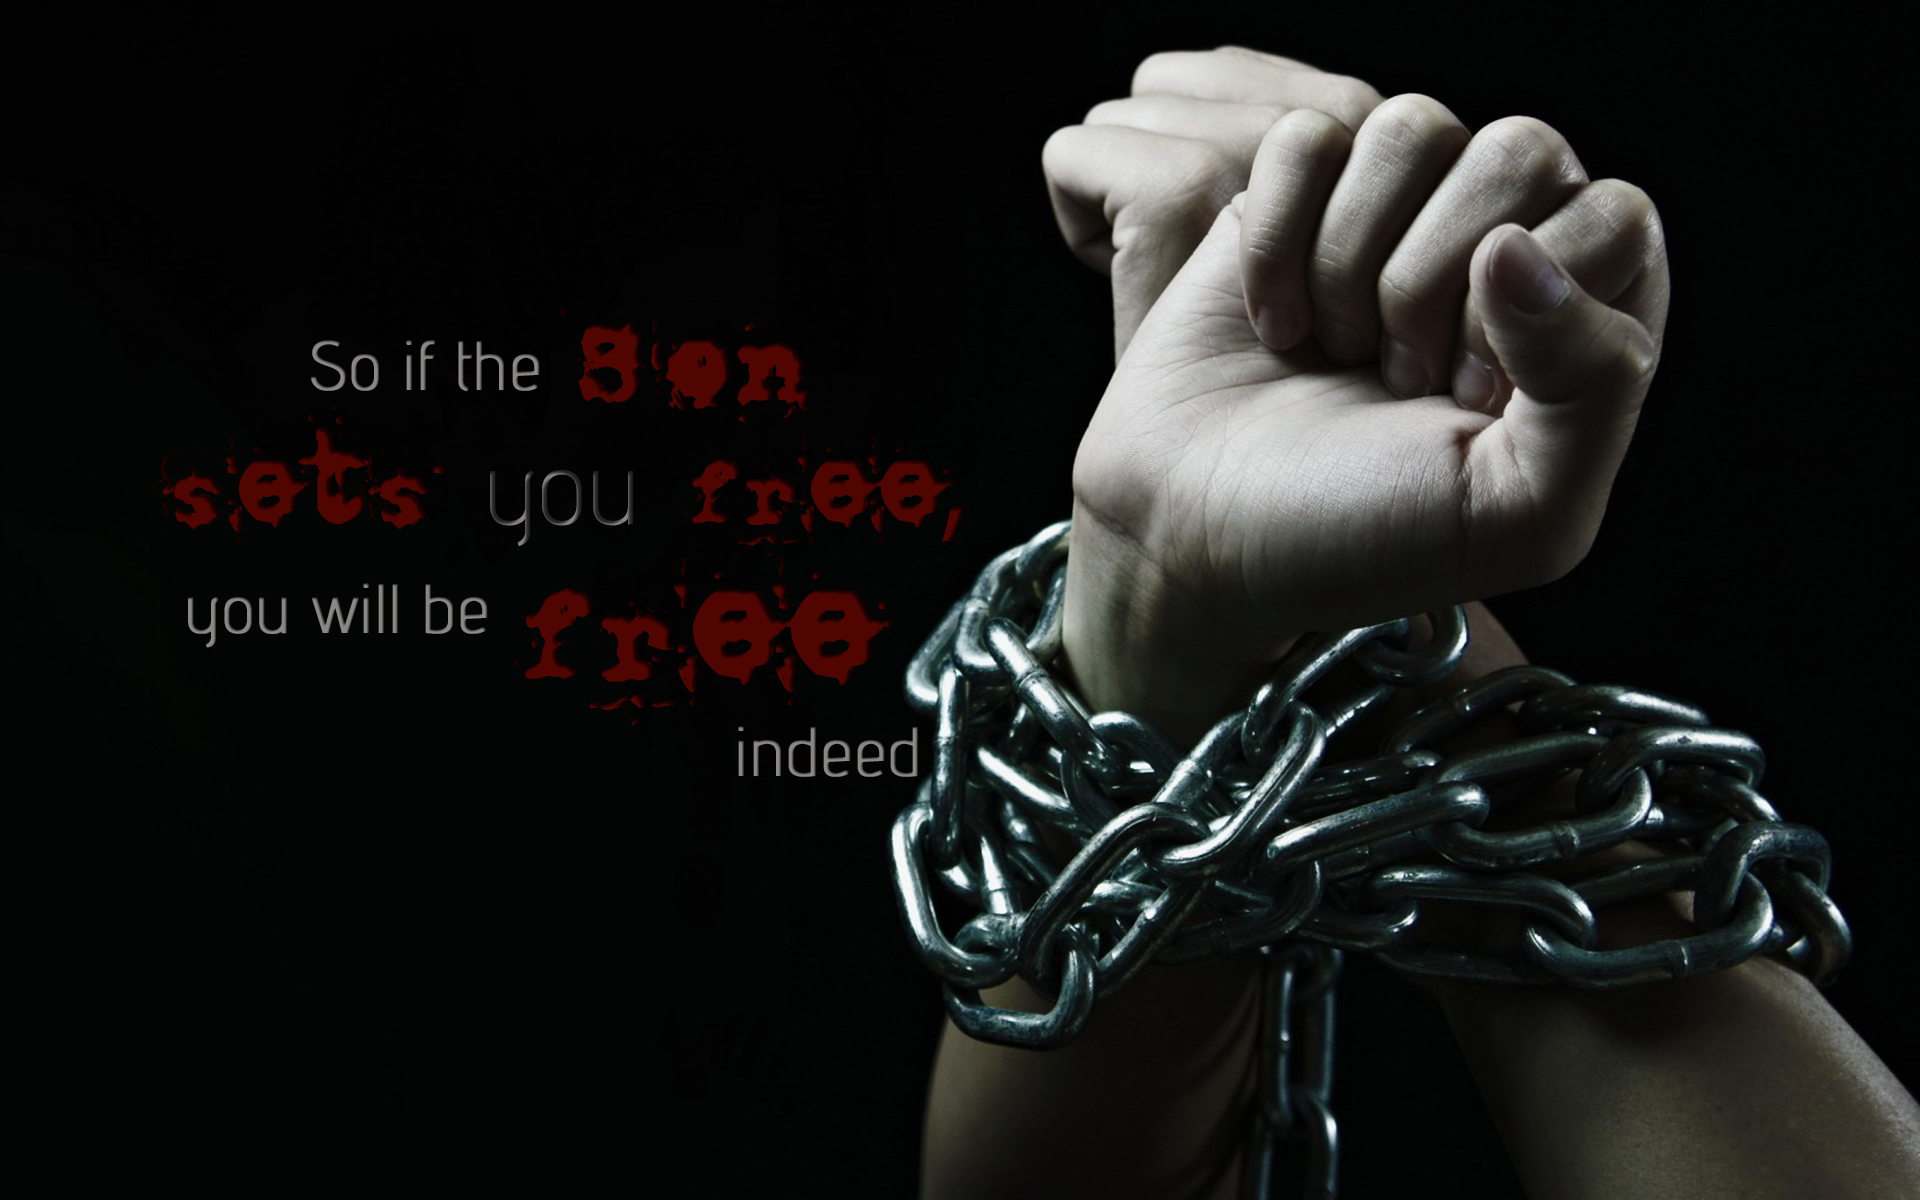 wp ands chains christian wallpaper hd 1920x1200jpg 1920x1200